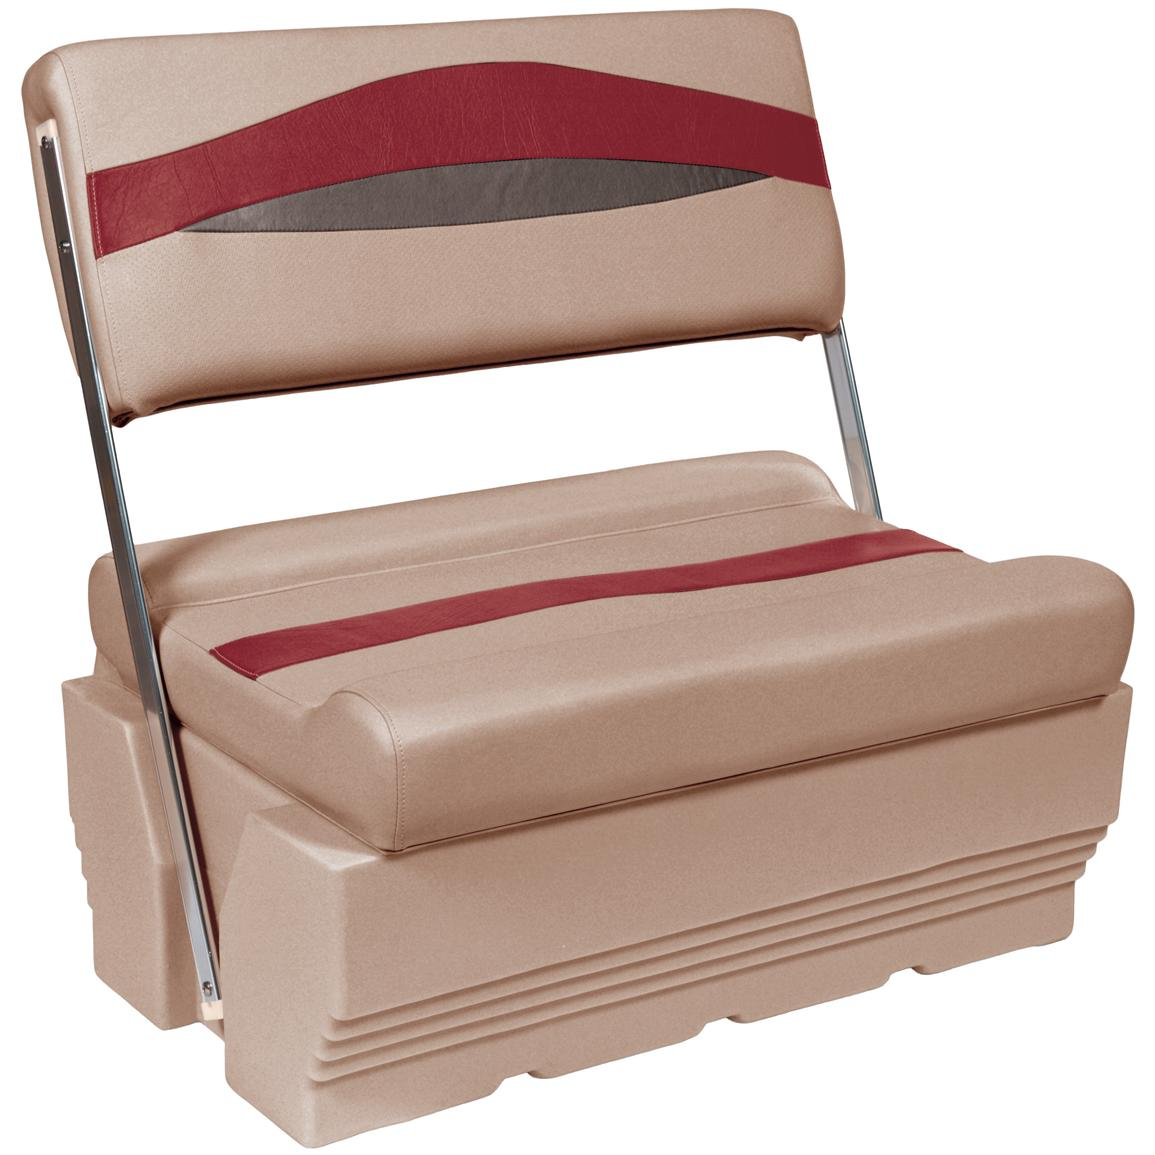 Wise® Premier 1100 Series Pontoon Flip-Flop Seat, Color E